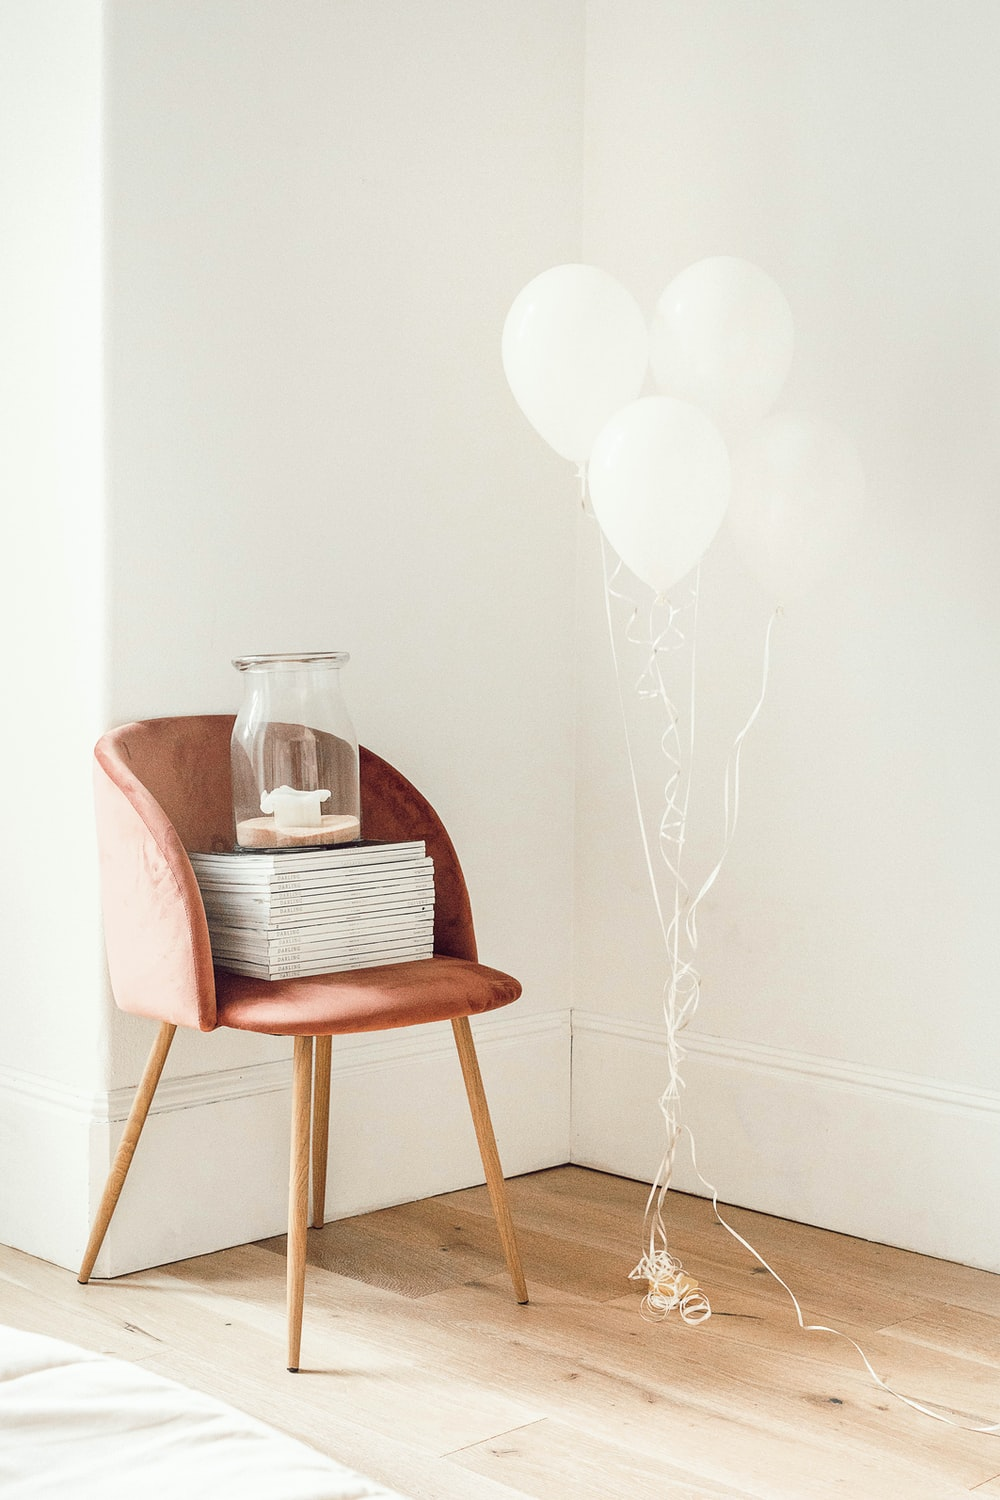 white balloons beside jar on book and chair